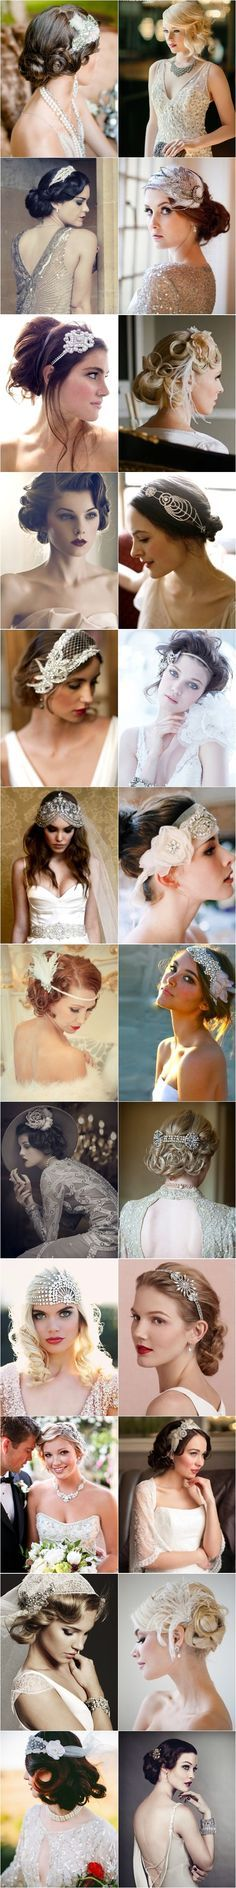 """Wedding Philippines - 1920s Gatsby Glam Inspired Hairstyles"" Tons of ideas for our hair for your future Gatsby-themed wedding! Lol @kaymac2012"